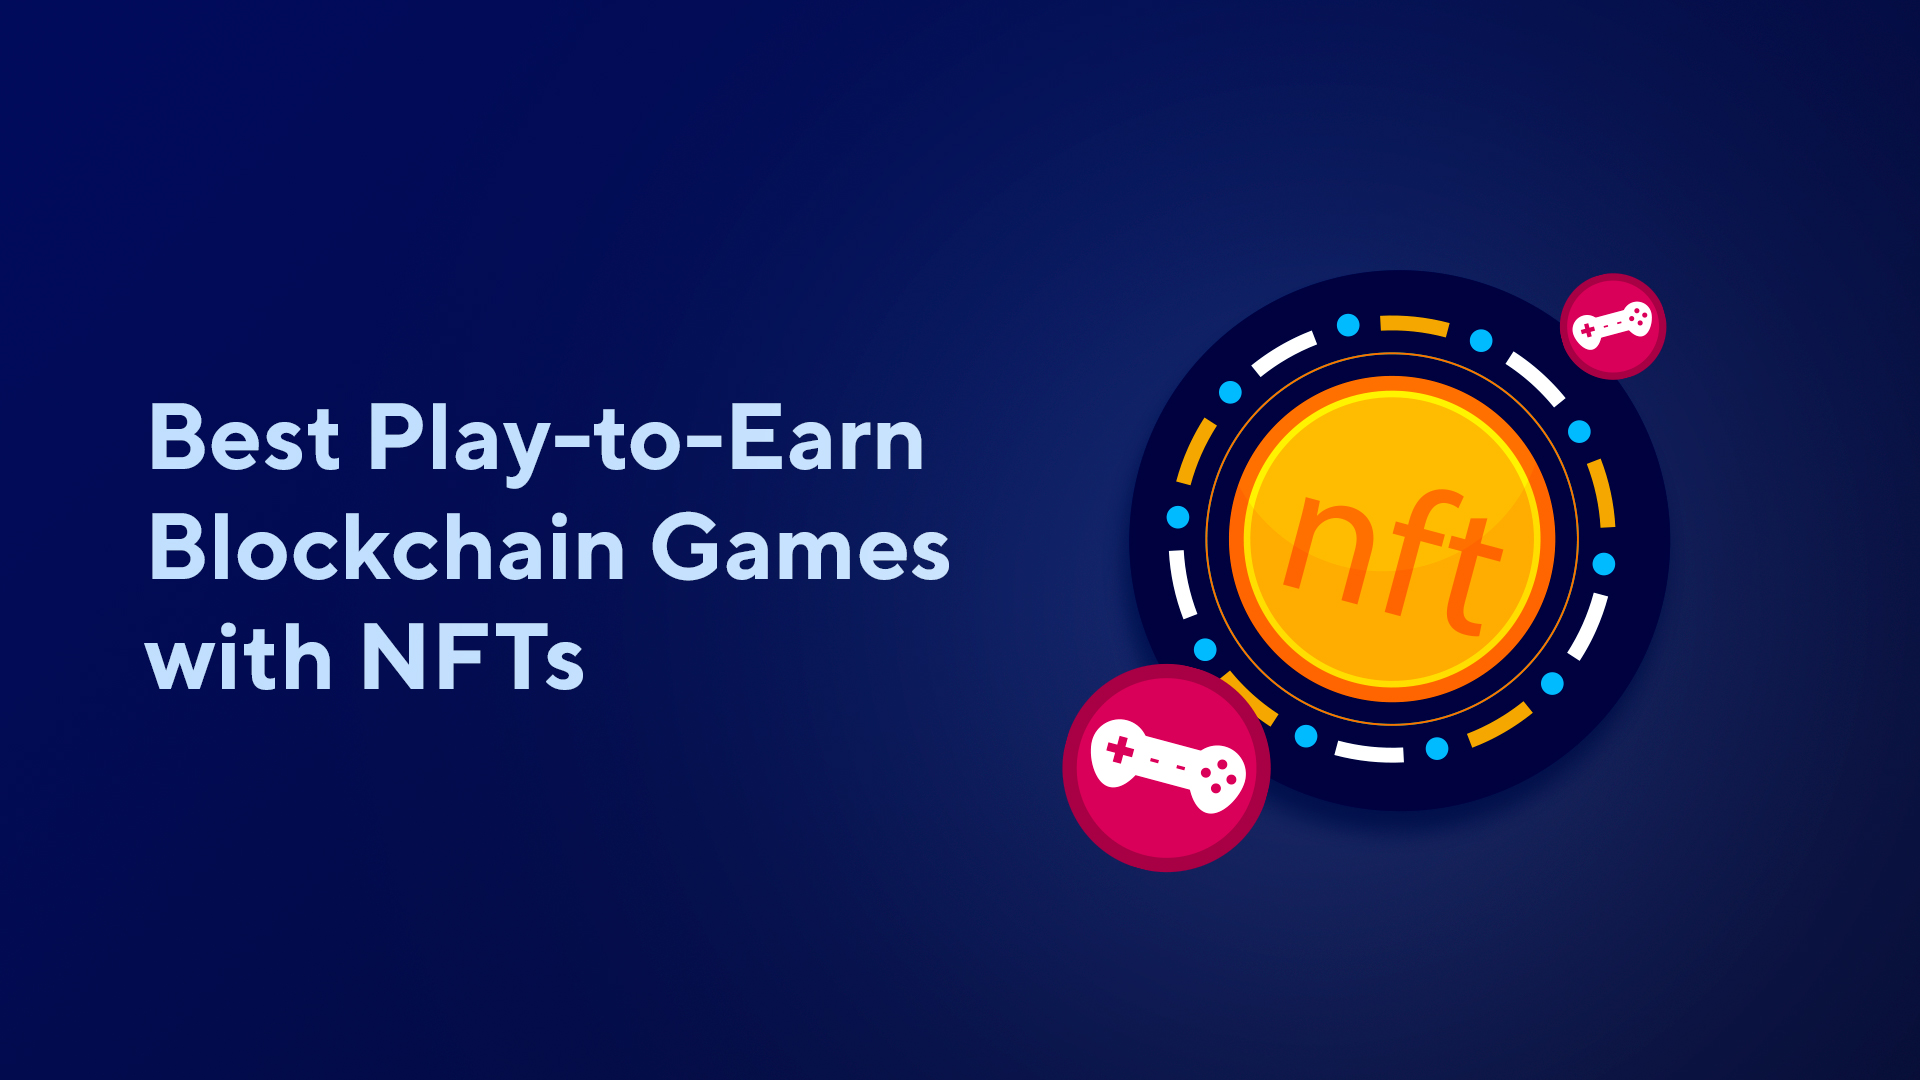 Best Play-to-Earn Blockchain Games with NFTs